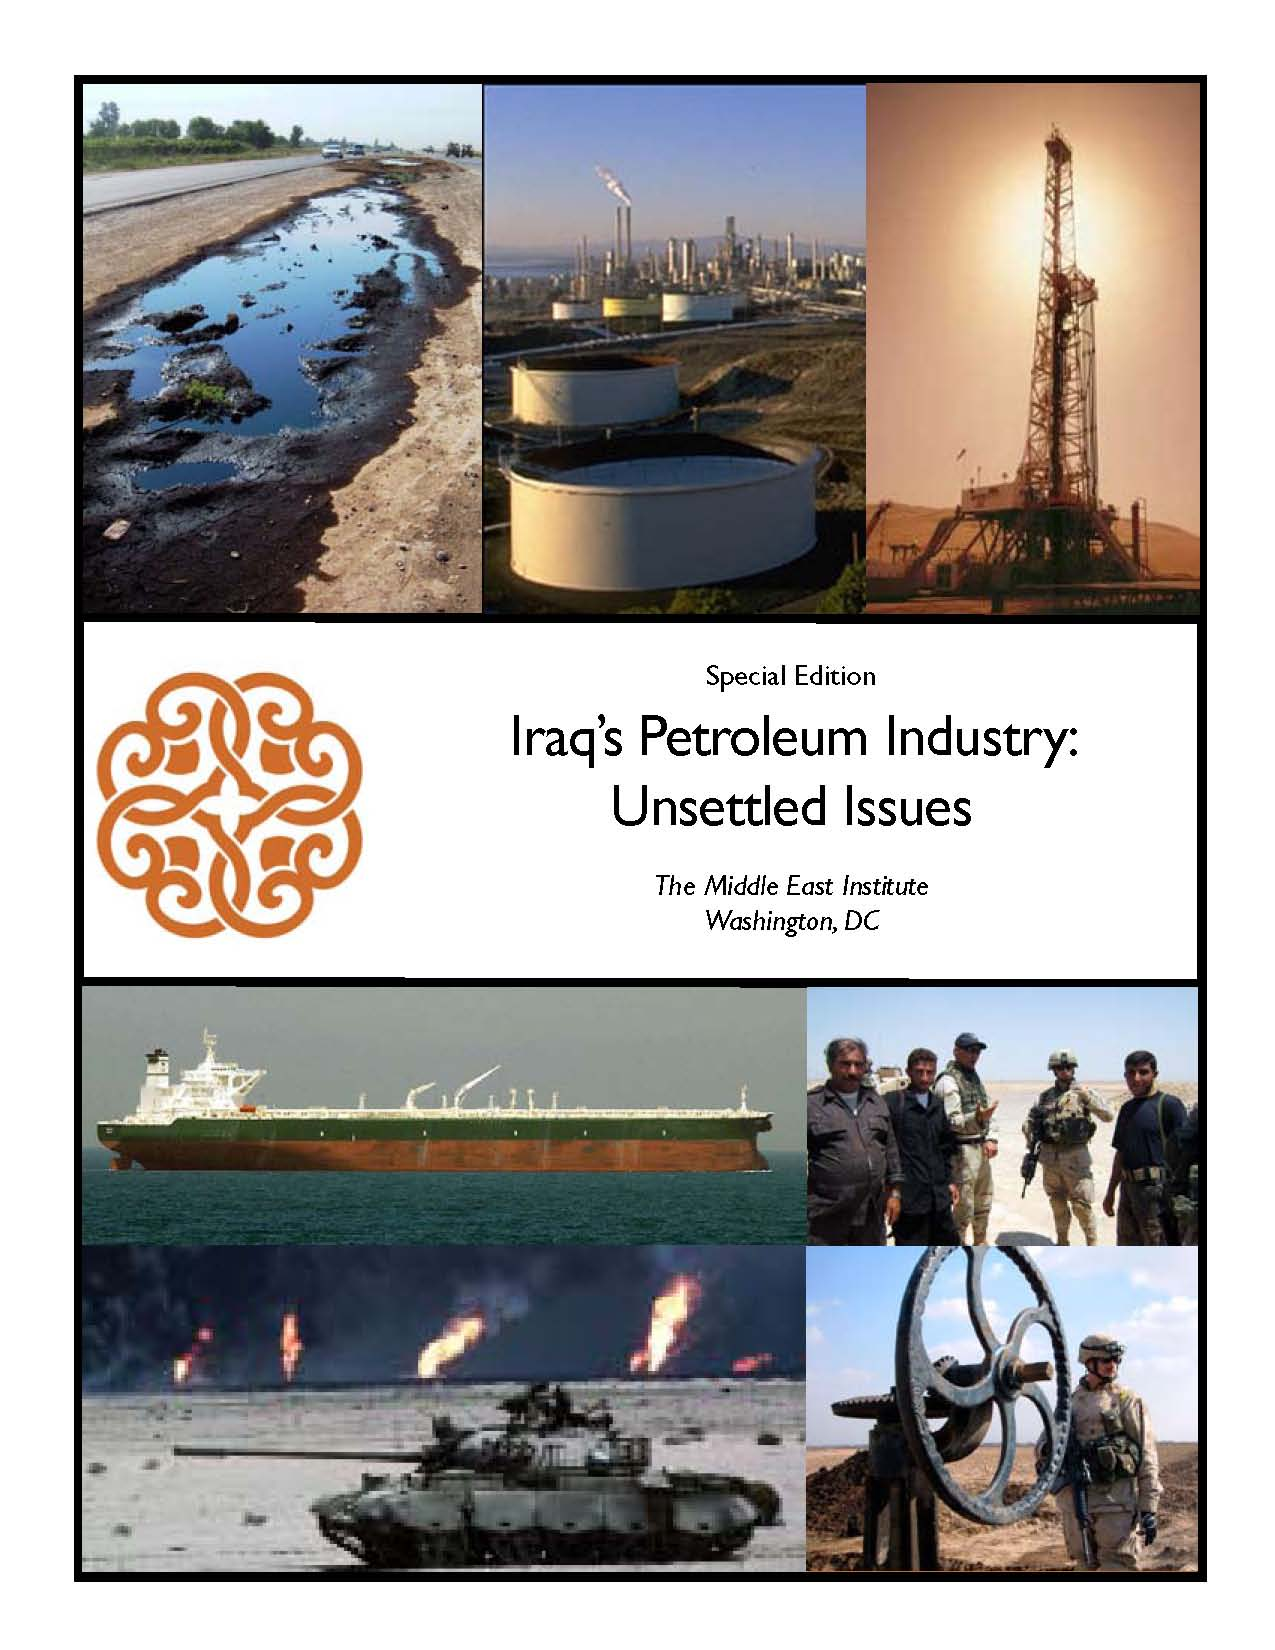 Iraq's Petroleum Industry: Unsettled Issues